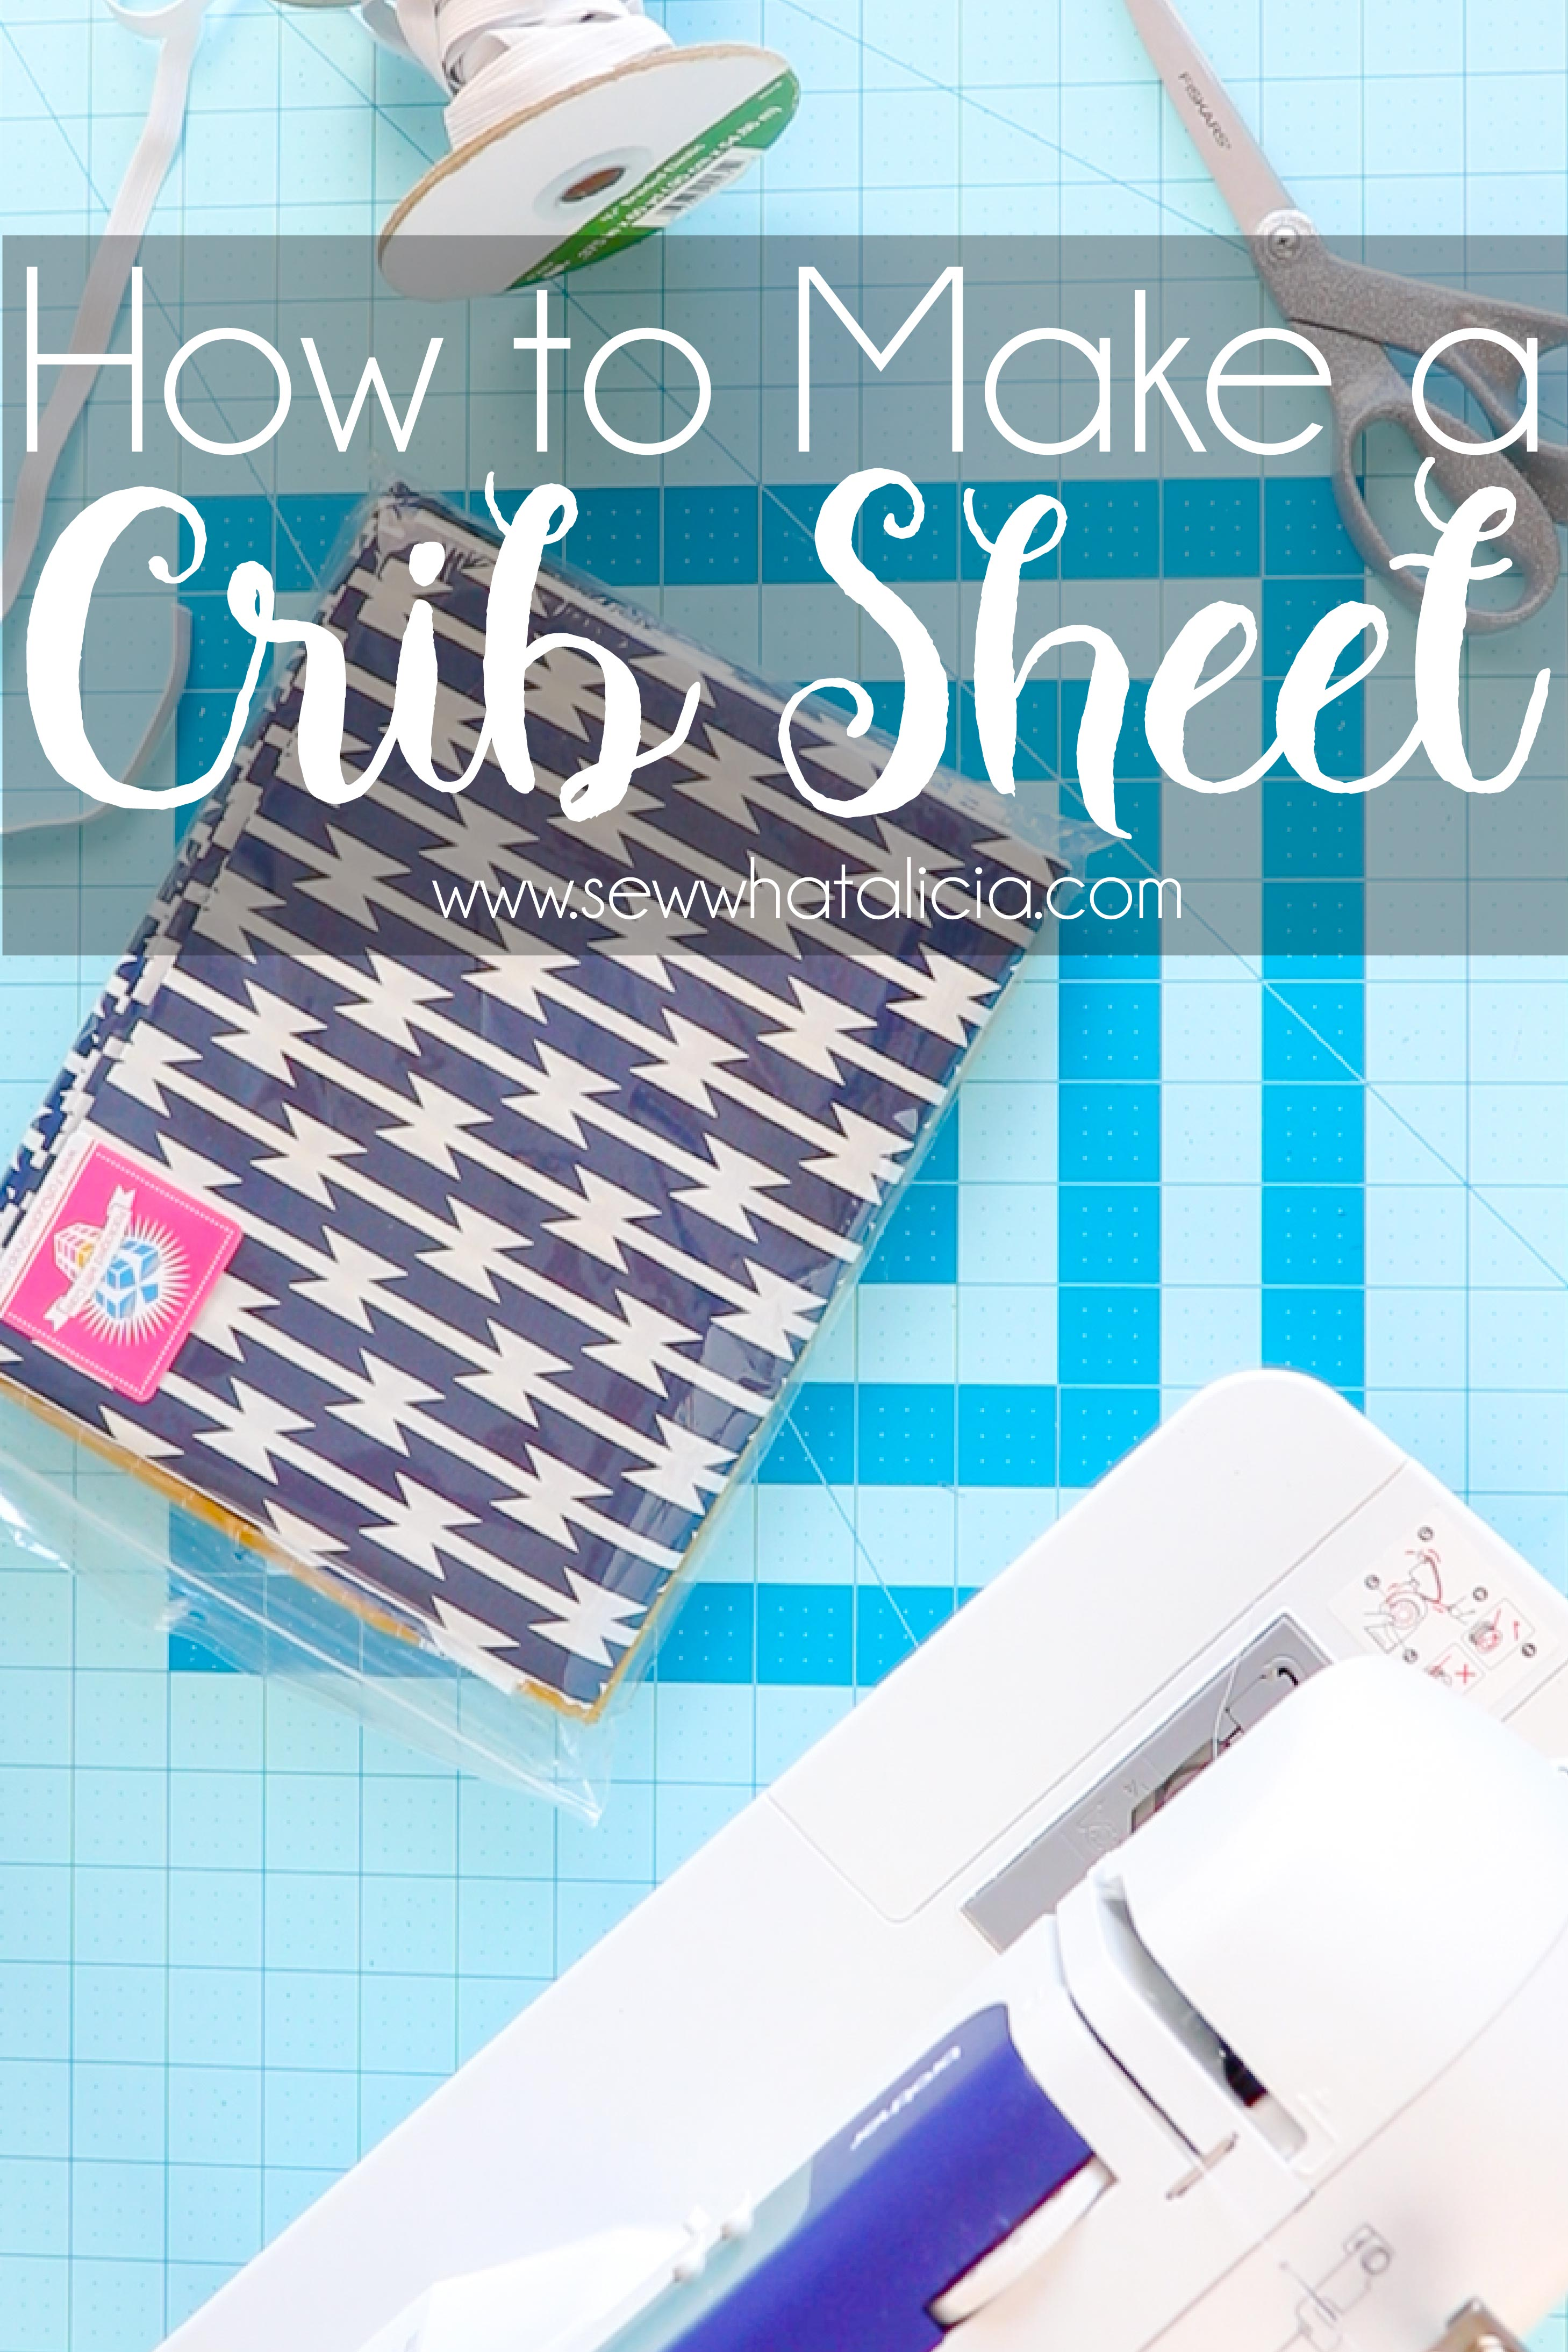 How To Make A Crib Sheet Sew What Alicia